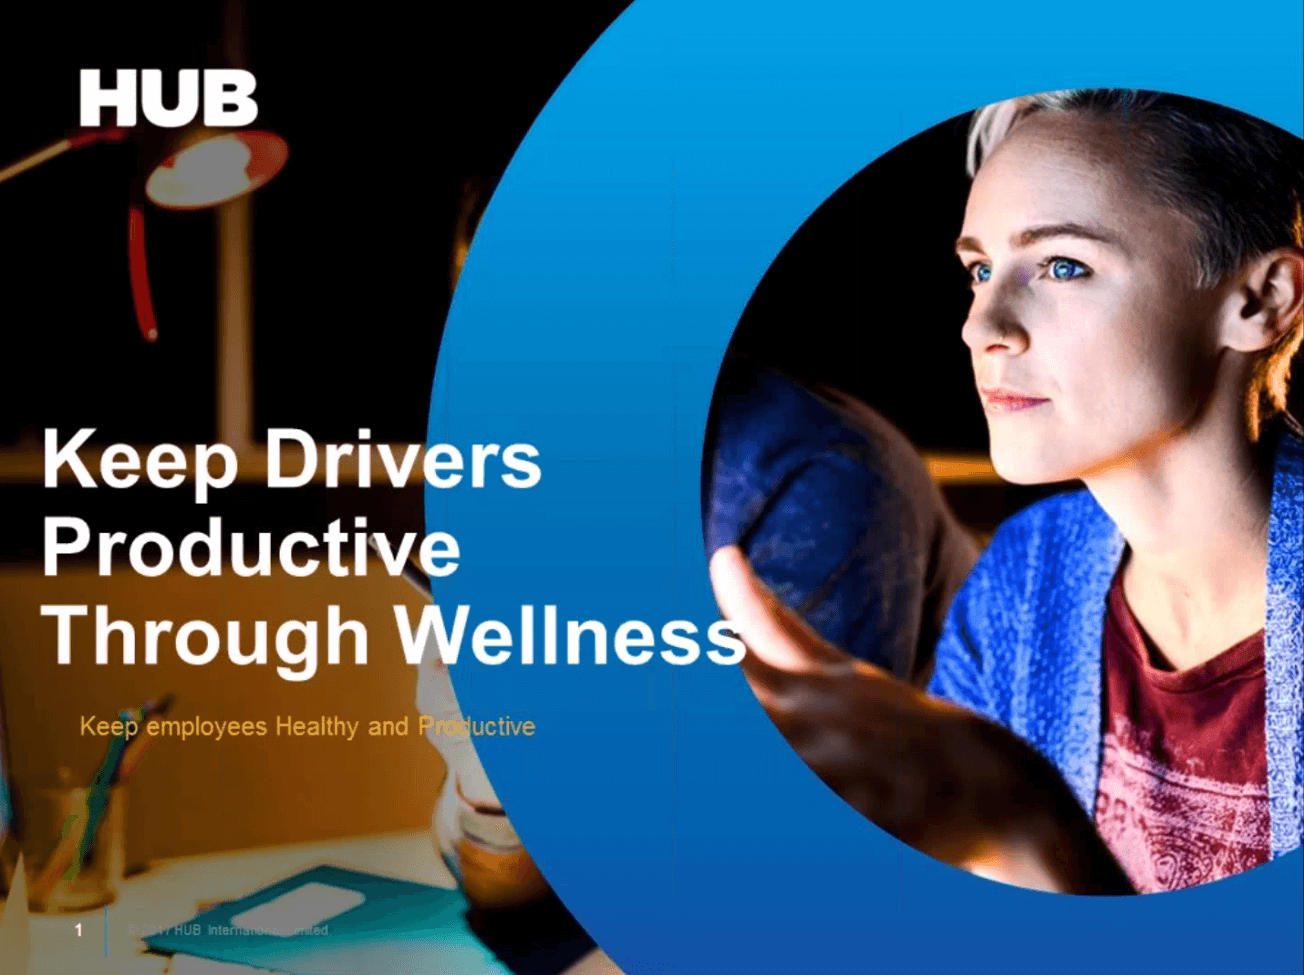 Commercial Driver Wellness